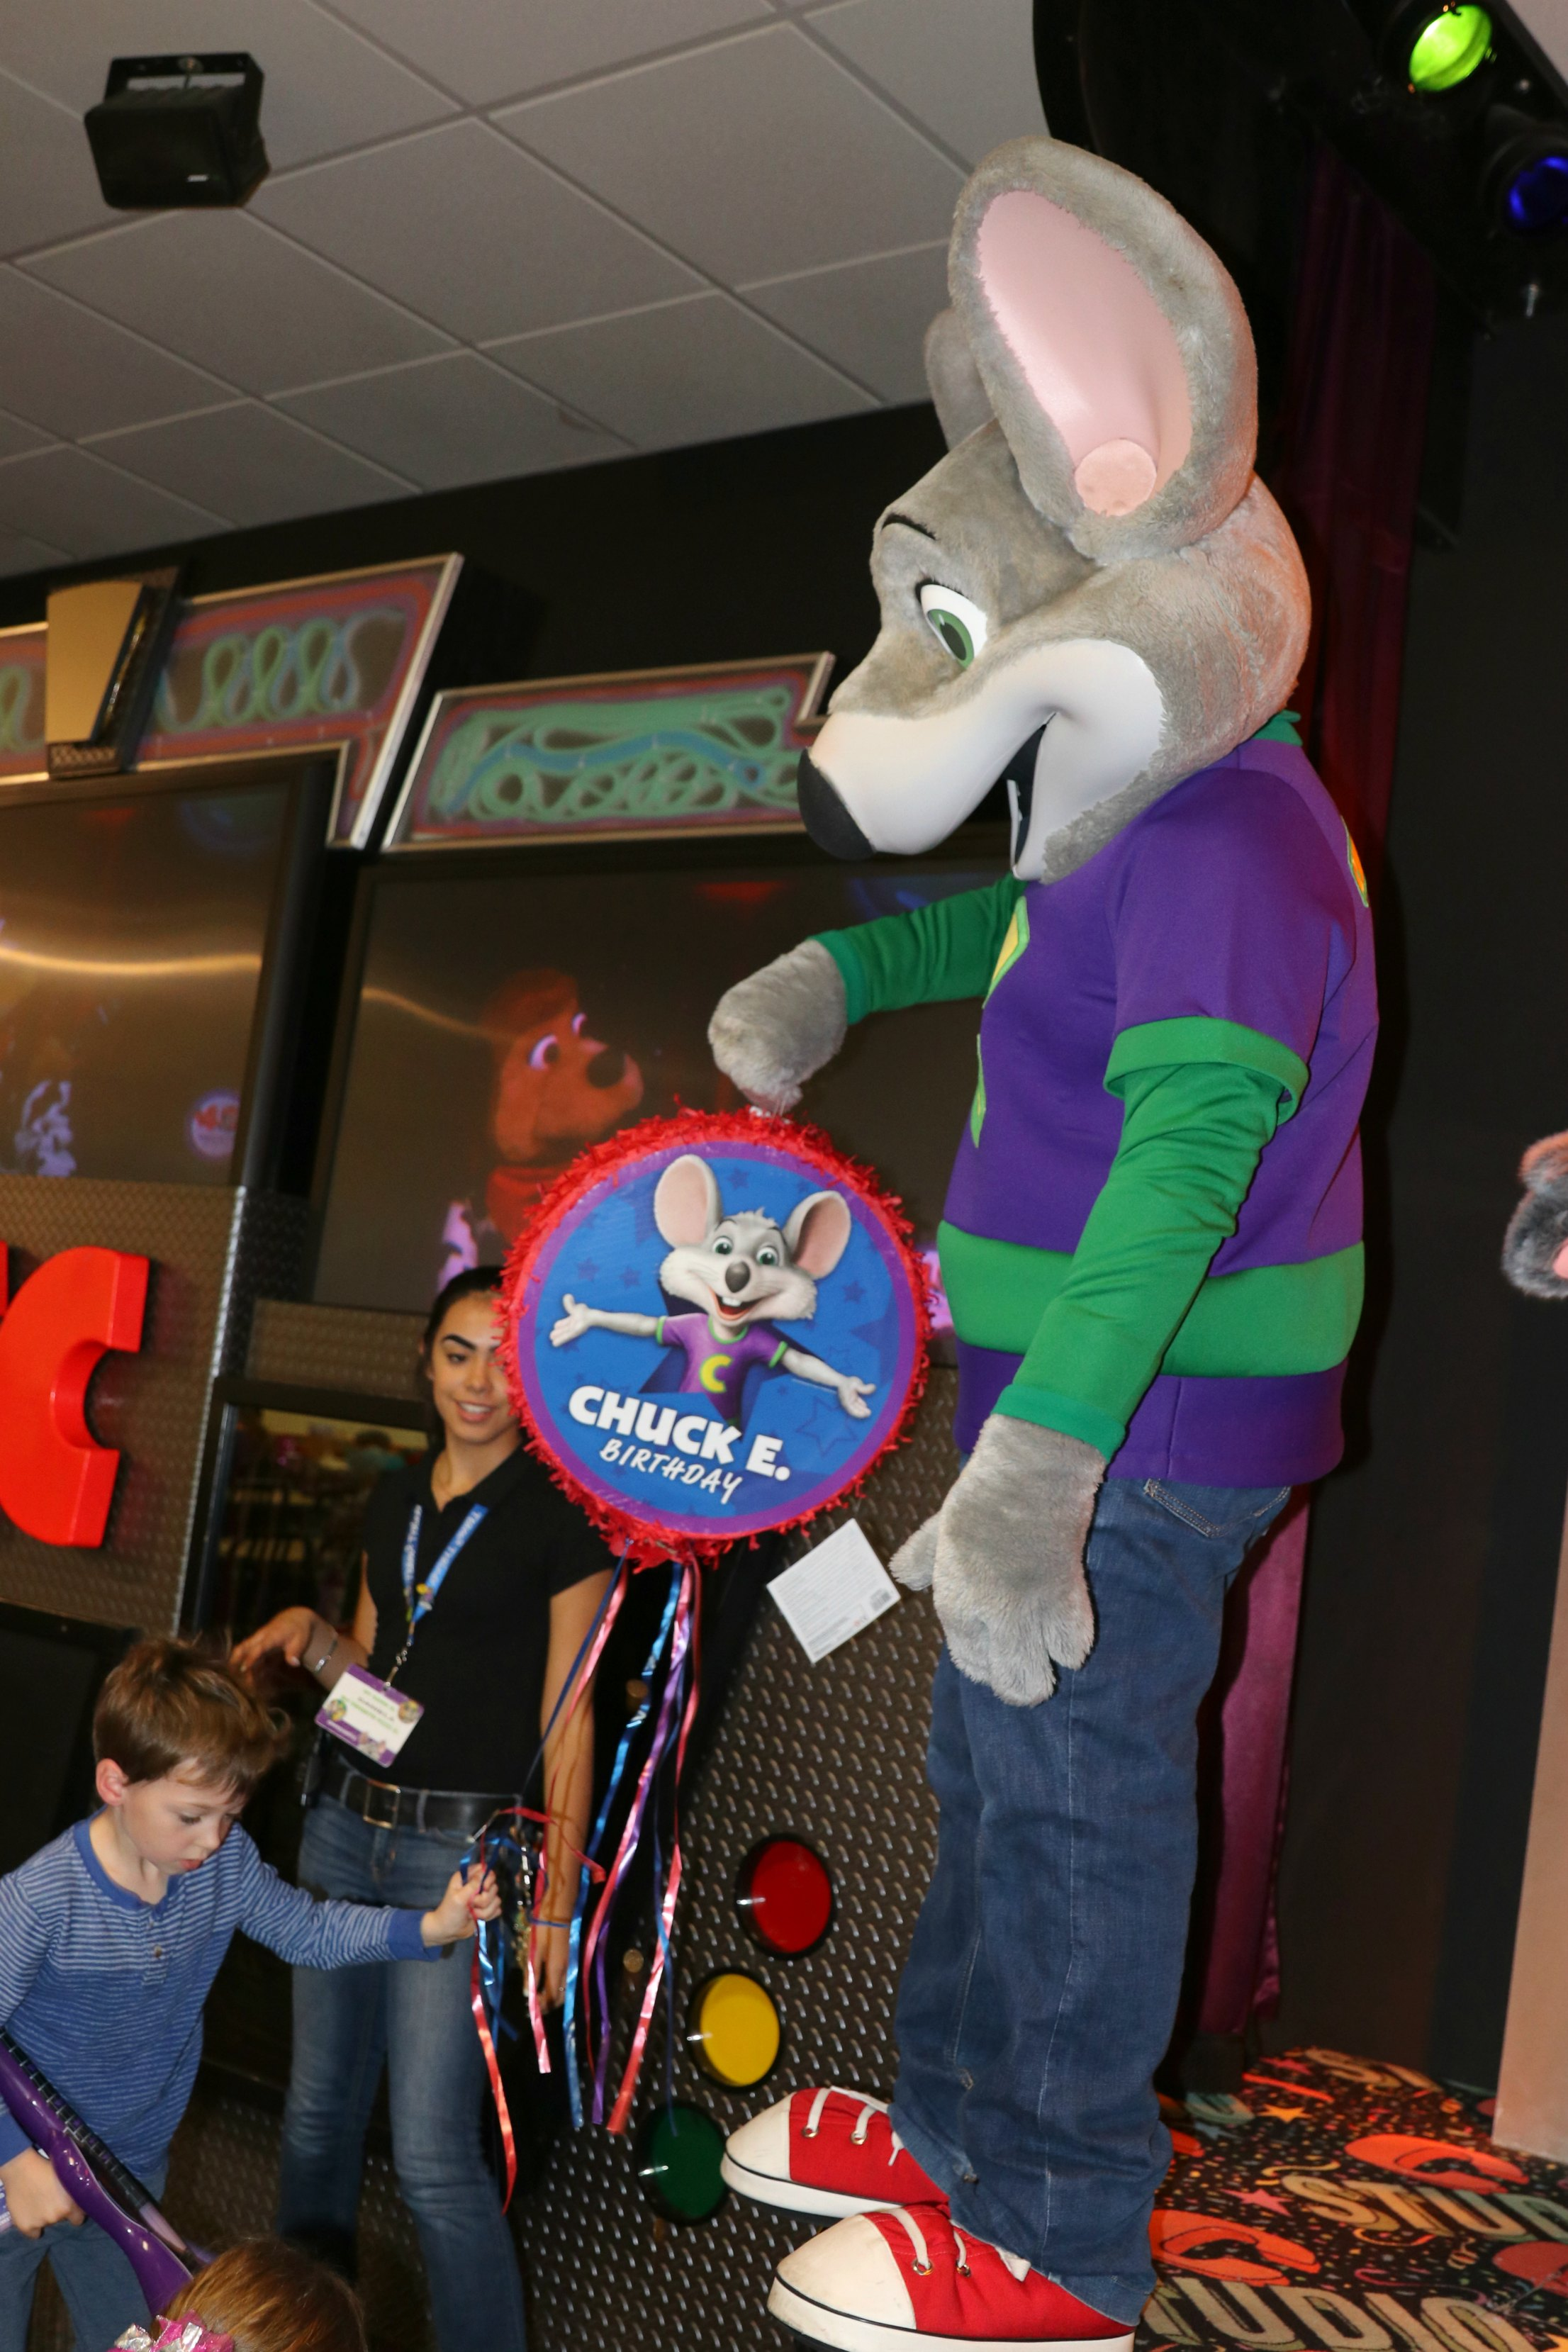 Chuck E. Cheese's party for kids